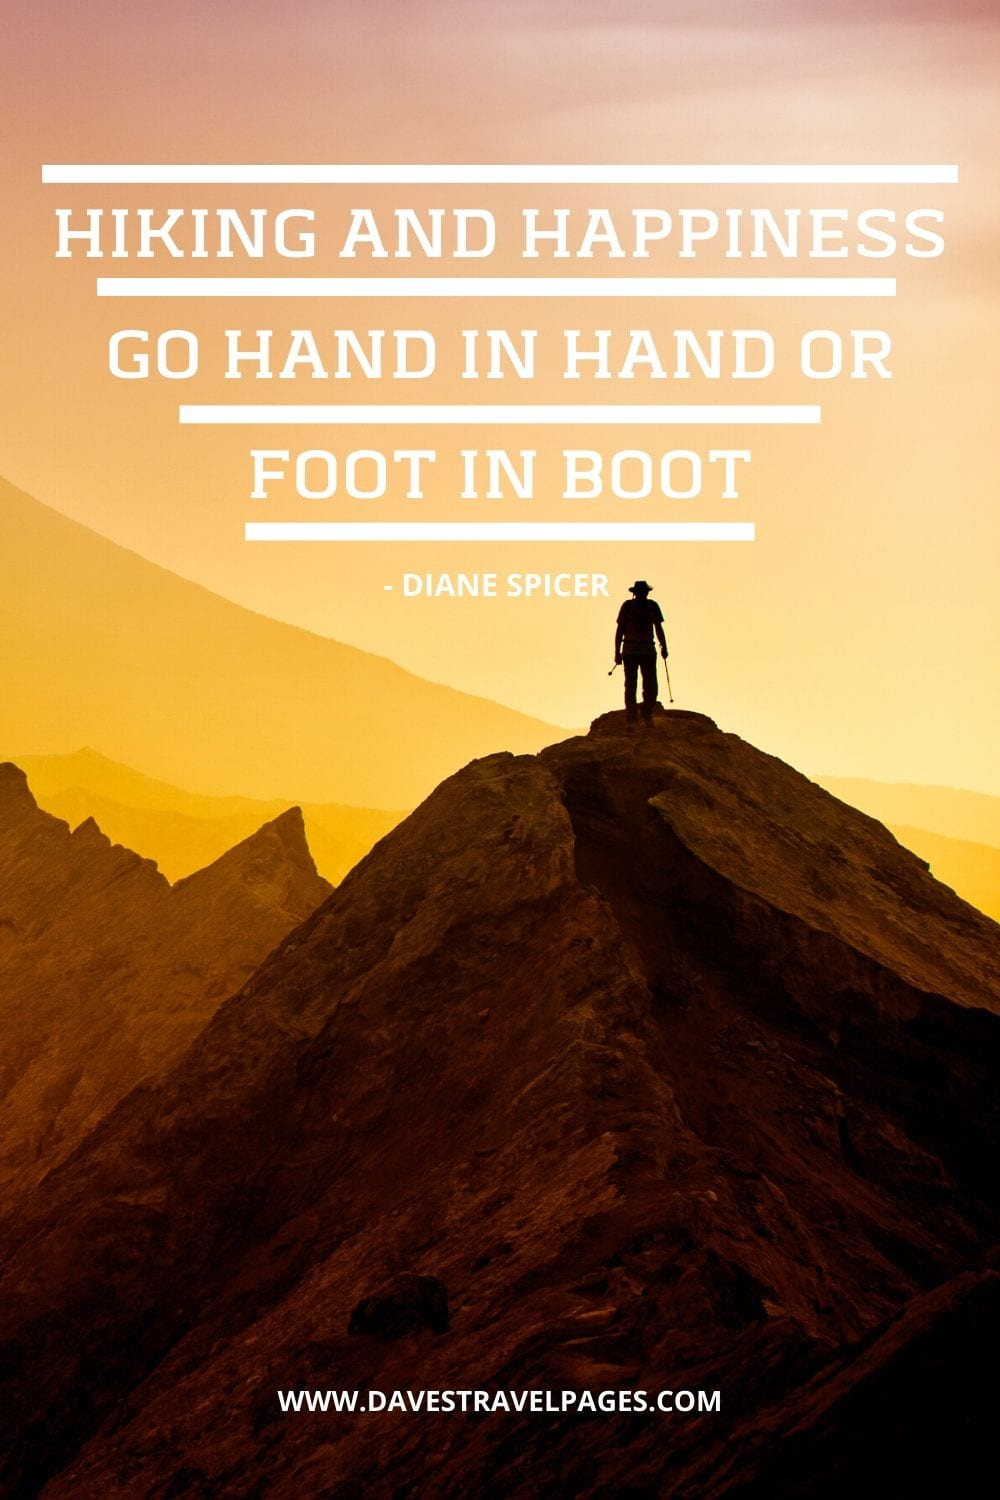 Hiking quotes: Hiking and happiness go hand in hand or foot in boot - Diane Spicer